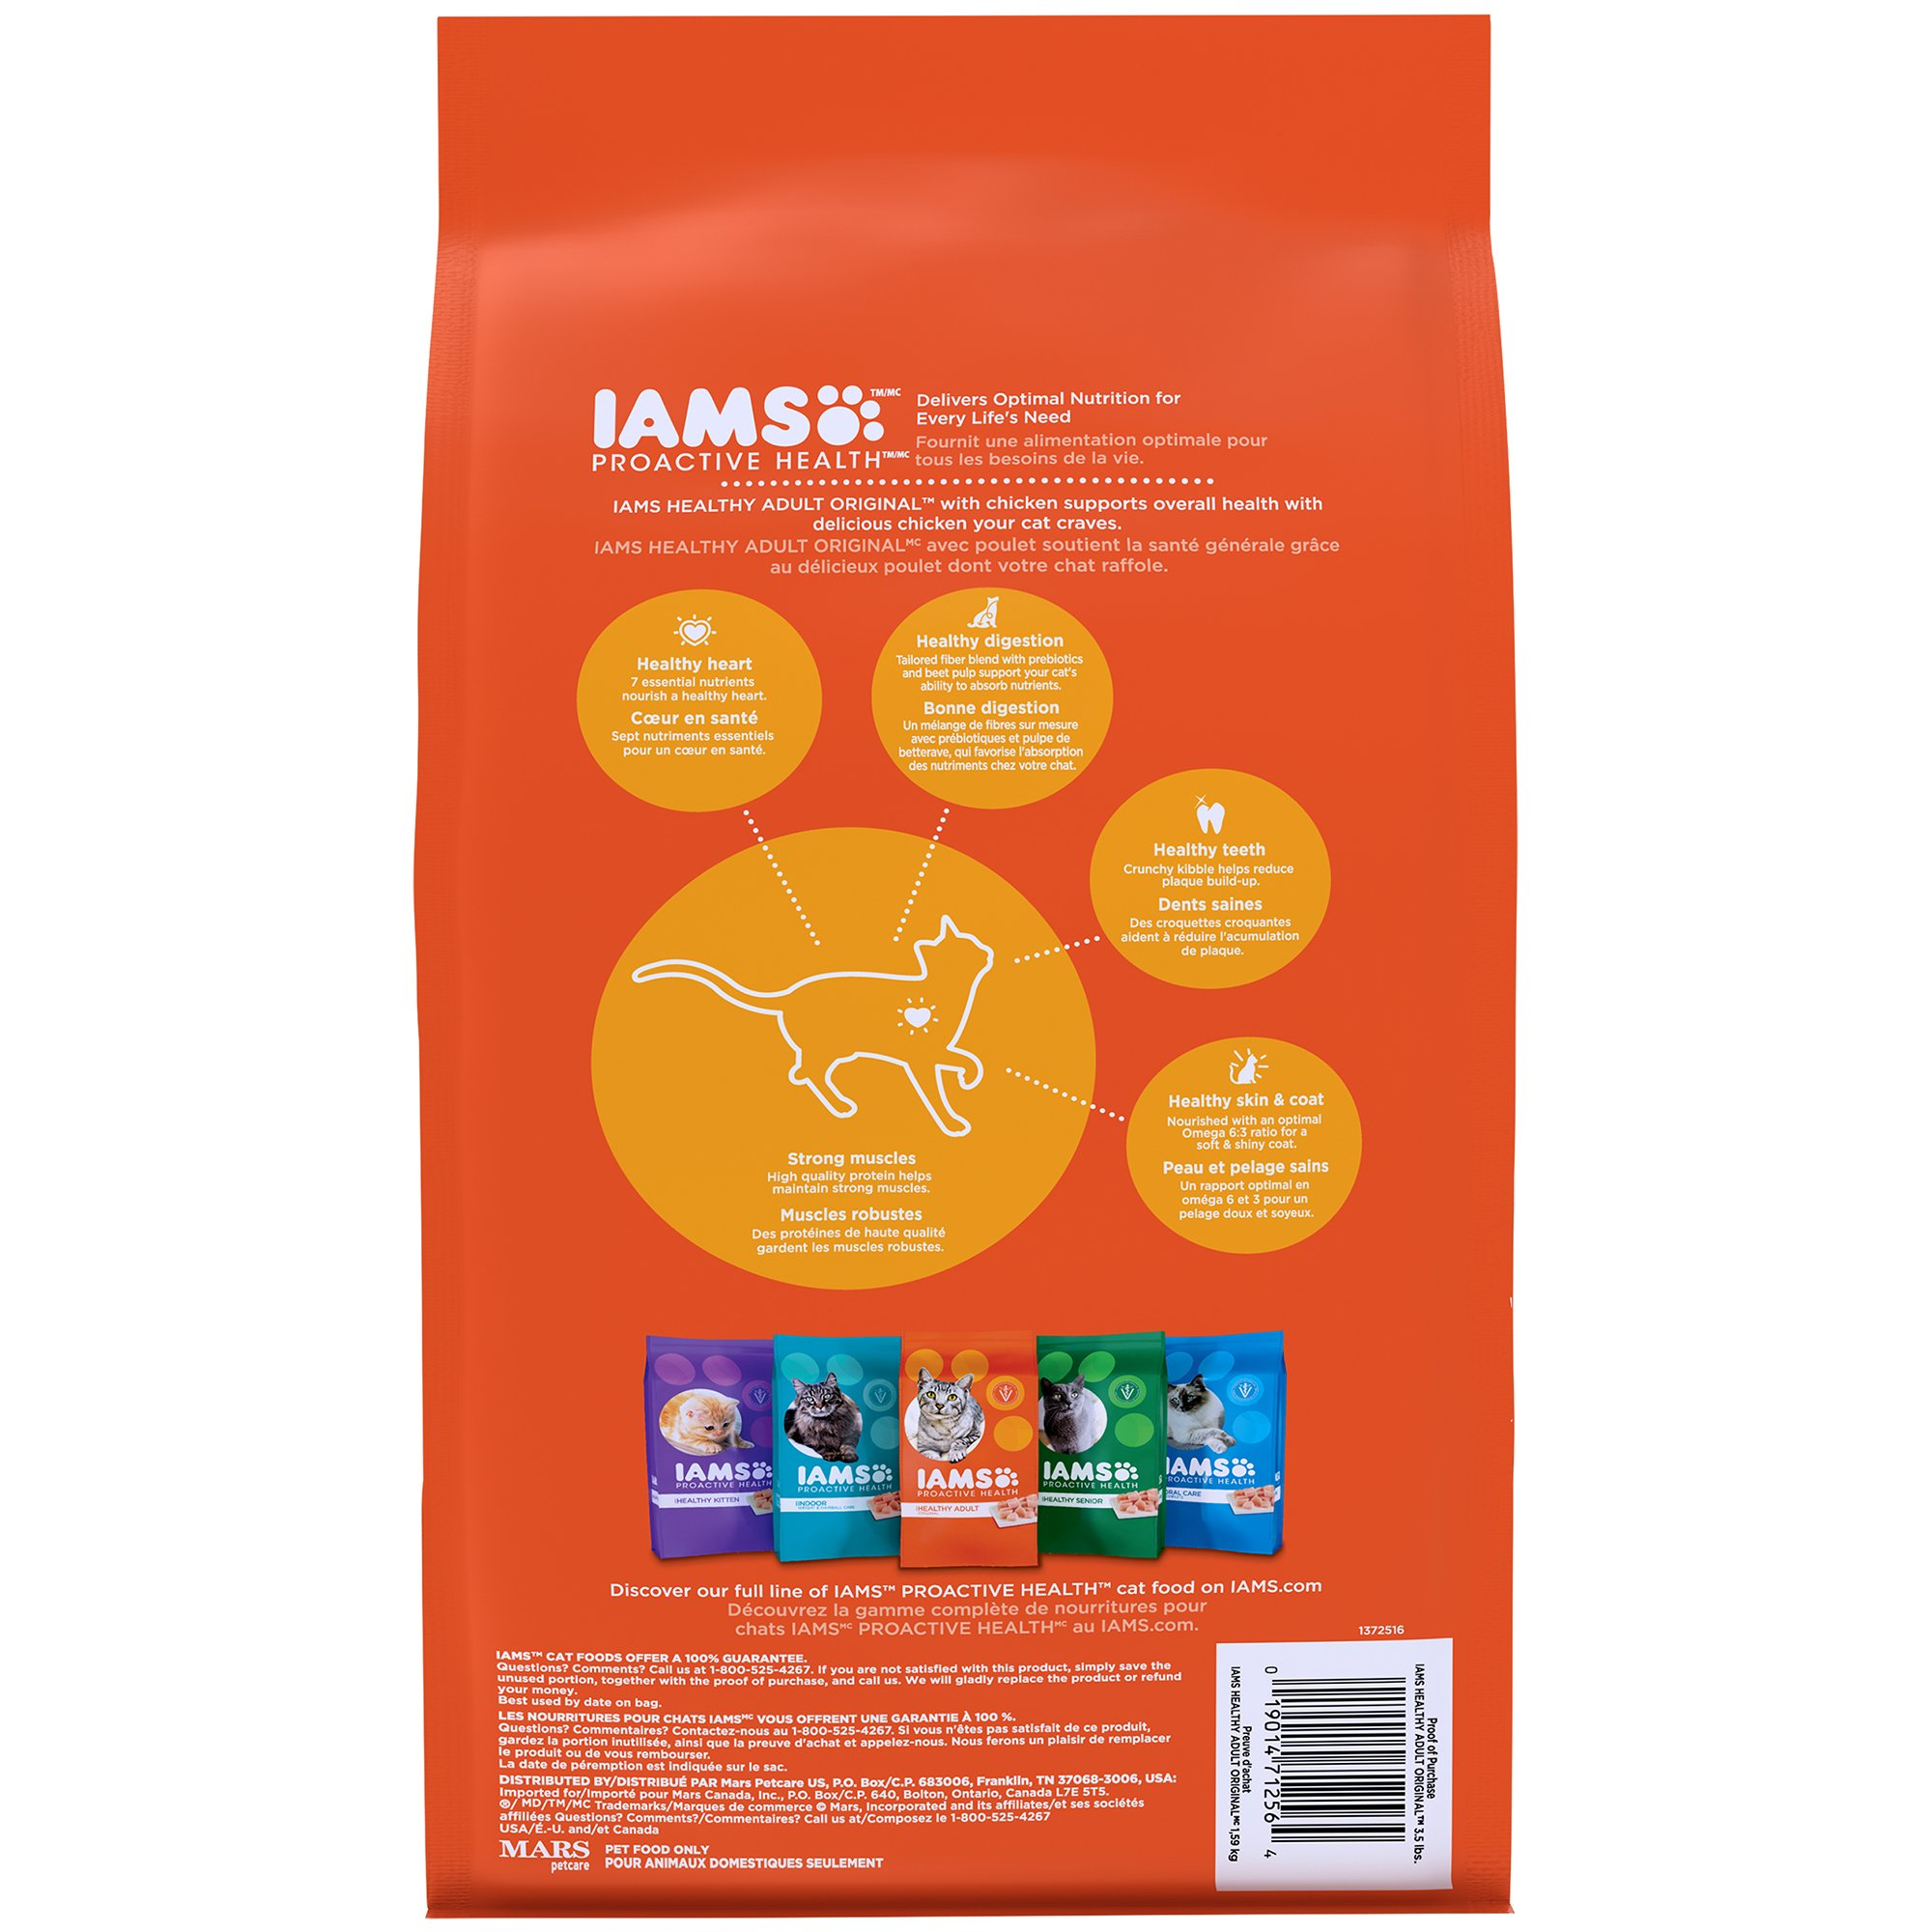 Pack of 3 - Iams Proactive Health Healthy Adult Original Cat Food with Chicken 7.0 lb Bag - 21 lbs total by Iams